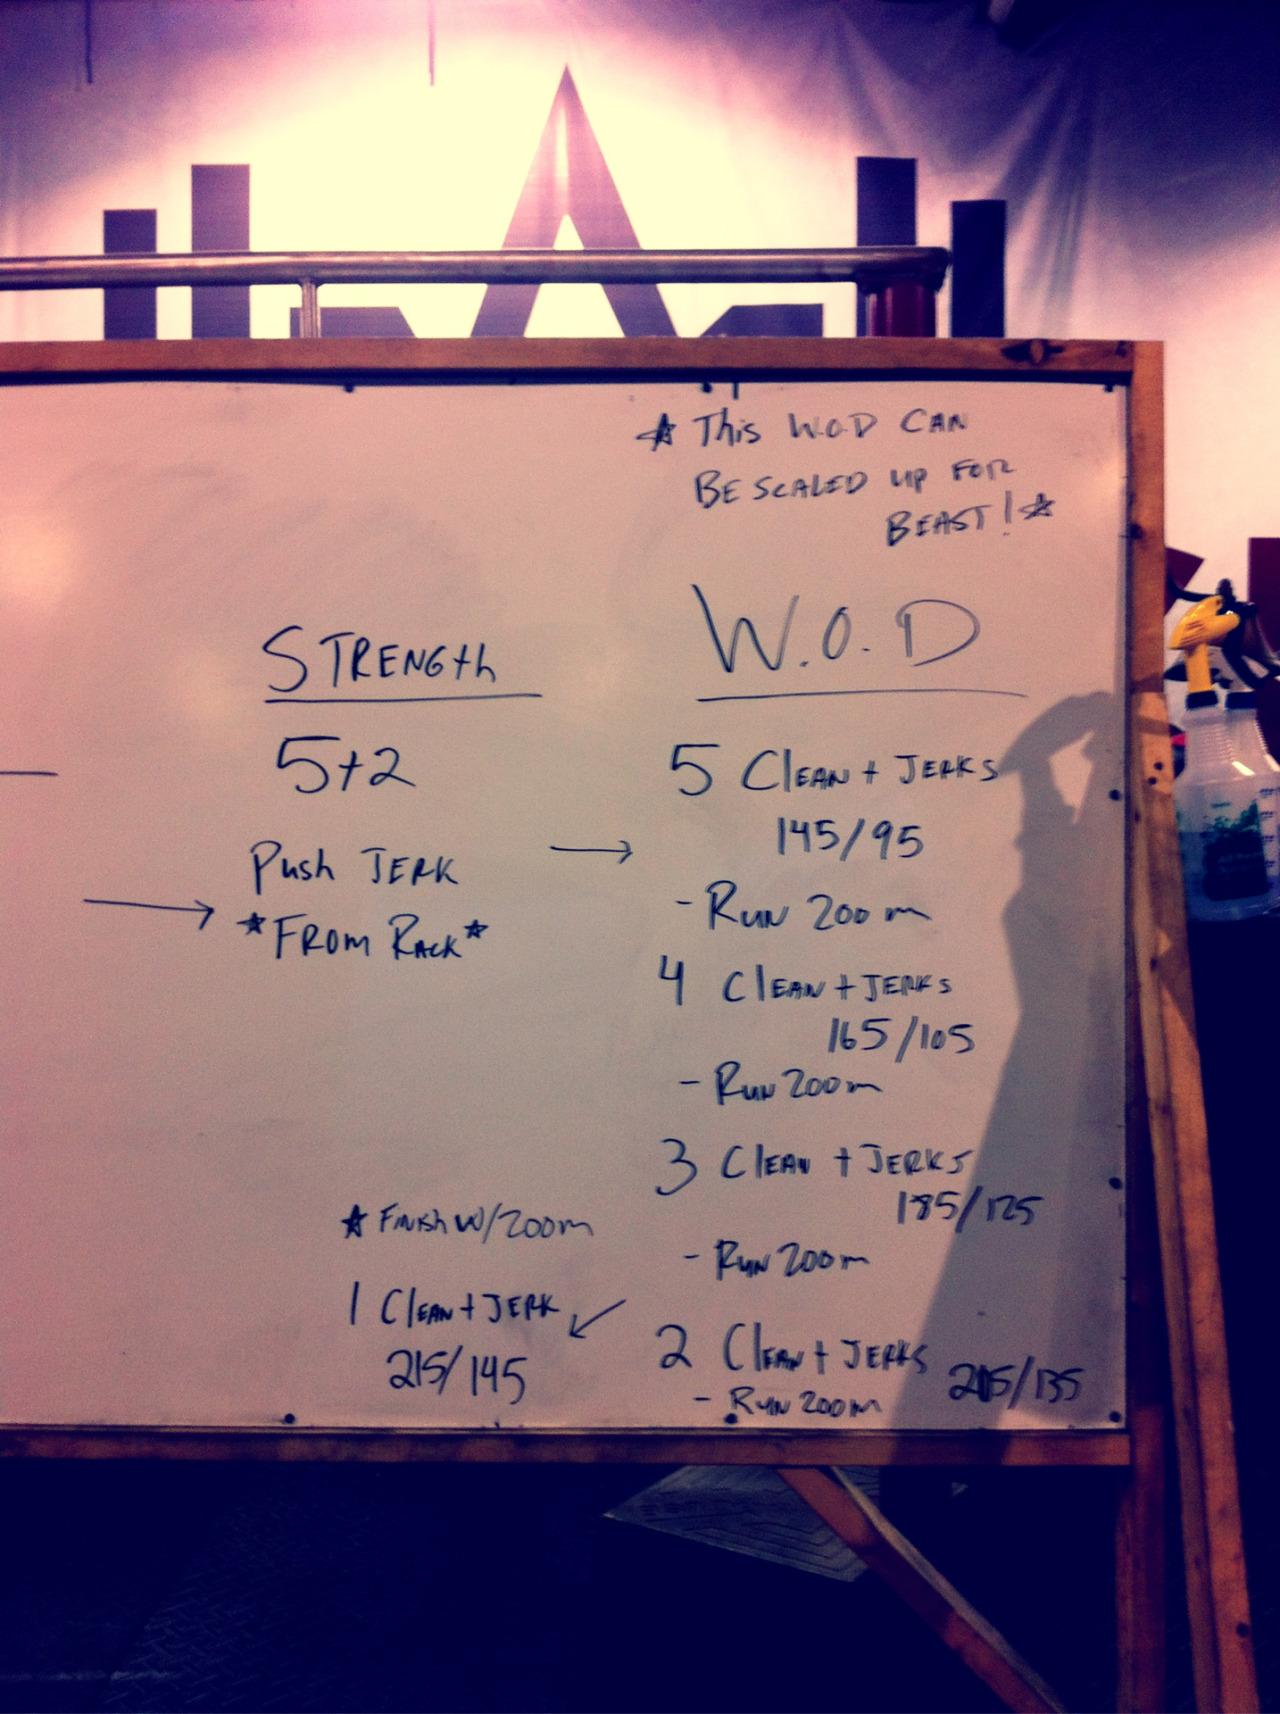 WOD - For Time:5 clean & jerks @ 145lbsRun 200m4 clean & jerks @ 165lbsRun 200m3 clean & jerks @ 185lbsRun 200m2 clean & jerks @ 205lbsRun 200m1 clean & jerk @ 215lbsRun 200m I felt really good this morning.  Really good.  I think it is a combination of taking the appropriate rest days, recovery process, as well as the added cardio that I have been doing.  In fact, the past 3 training days have all felt great.  More so than usual.  Anyway, all of that coupled with a WOD that is a strength and it was a win. I really cannot remember the last time I felt this way, but during this WOD it was like I couldn't push hard enough.  Normally our runs start from the loading dock ramp and end there as well.  I typically setup away from that area and use it during running WODs to catch my breath as I will run to the door and then walk over to my bar.  Today I ran from my spot out and back and then back to my bar.  As the weight increased it never really felt heavier.  Strange to say that, but I felt more aggressive and also wanted to run faster.  I lapped one dude twice. Finished first in the class with 10:17 @ RX.